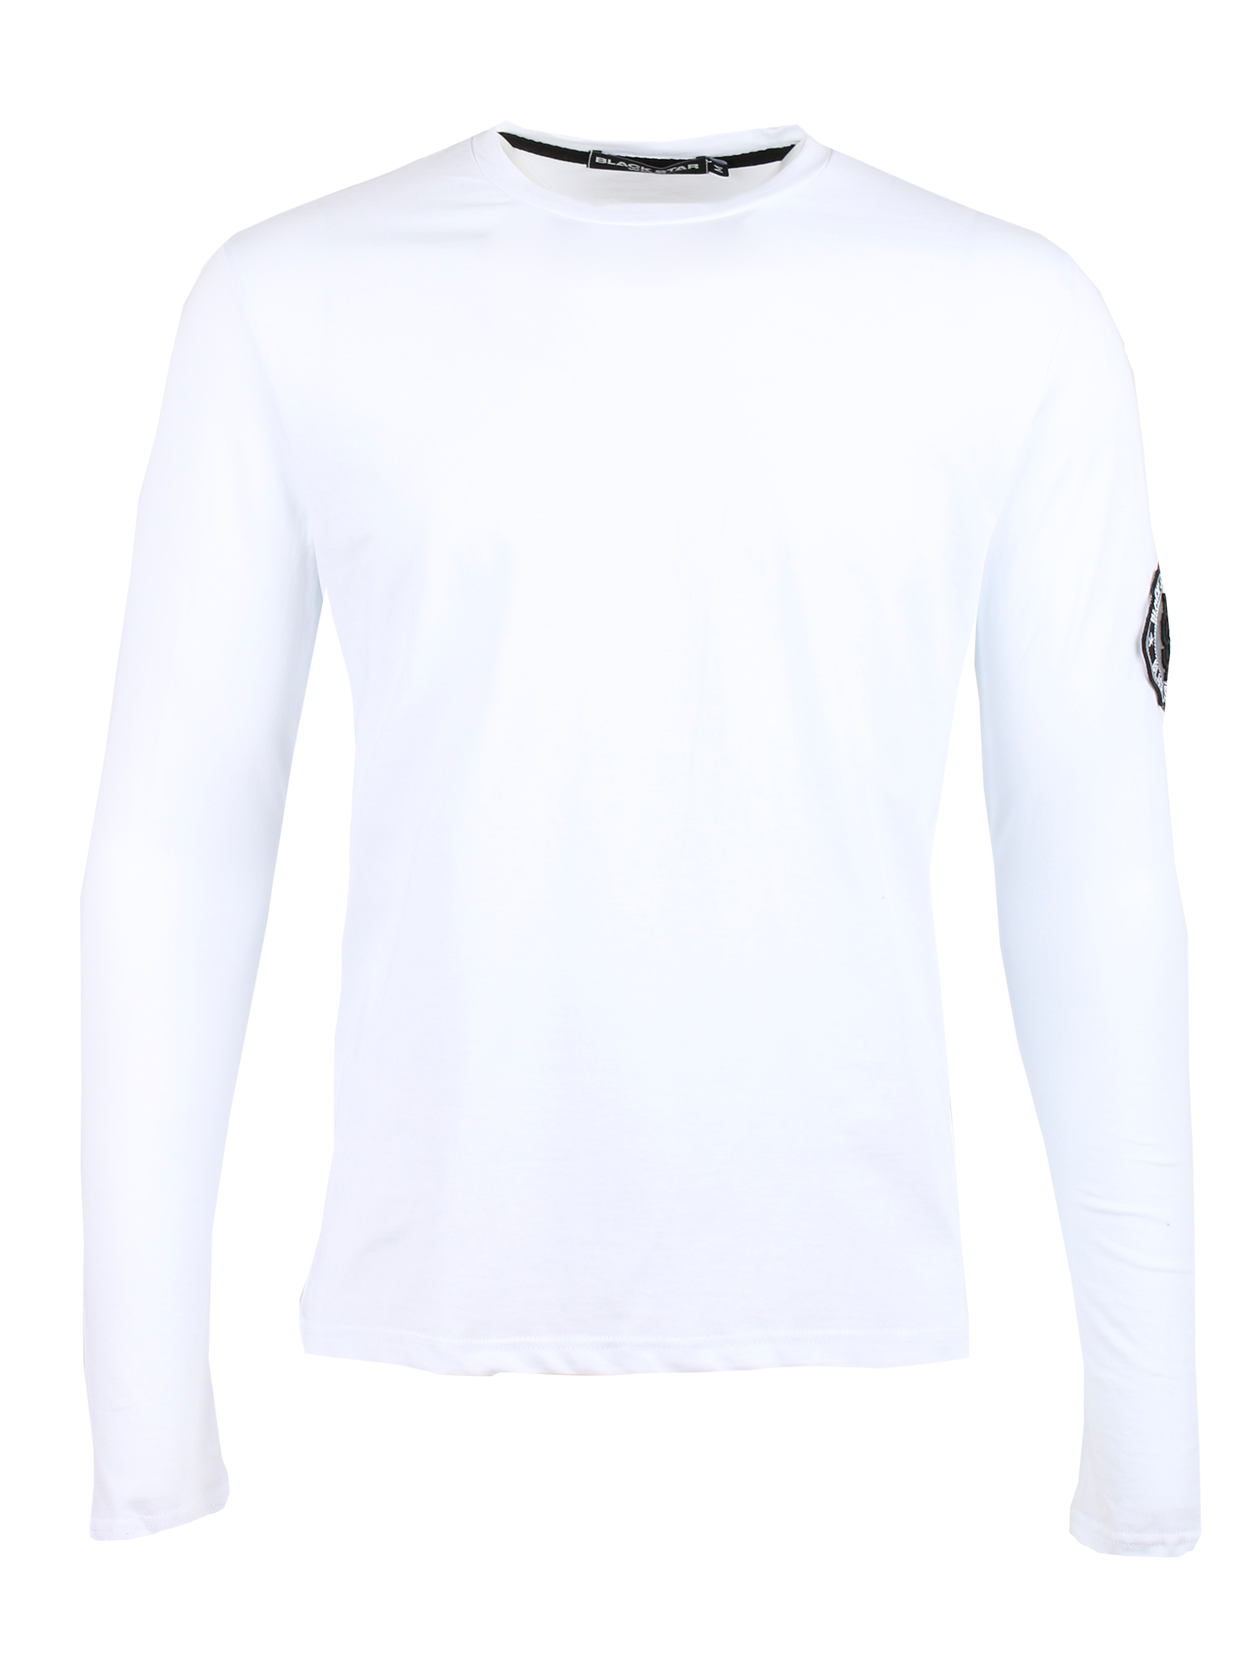 Mens long sleeve t-shirt StoneMens long sleeve t-shirt by Black Star Wear. Straight cut, regular fit, raw cut neckline. Patch on the left sleeve. Material: natural cotton - 90%, lycra - 10%. Avaliable in black and white.<br><br>size: XS<br>color: White<br>gender: male